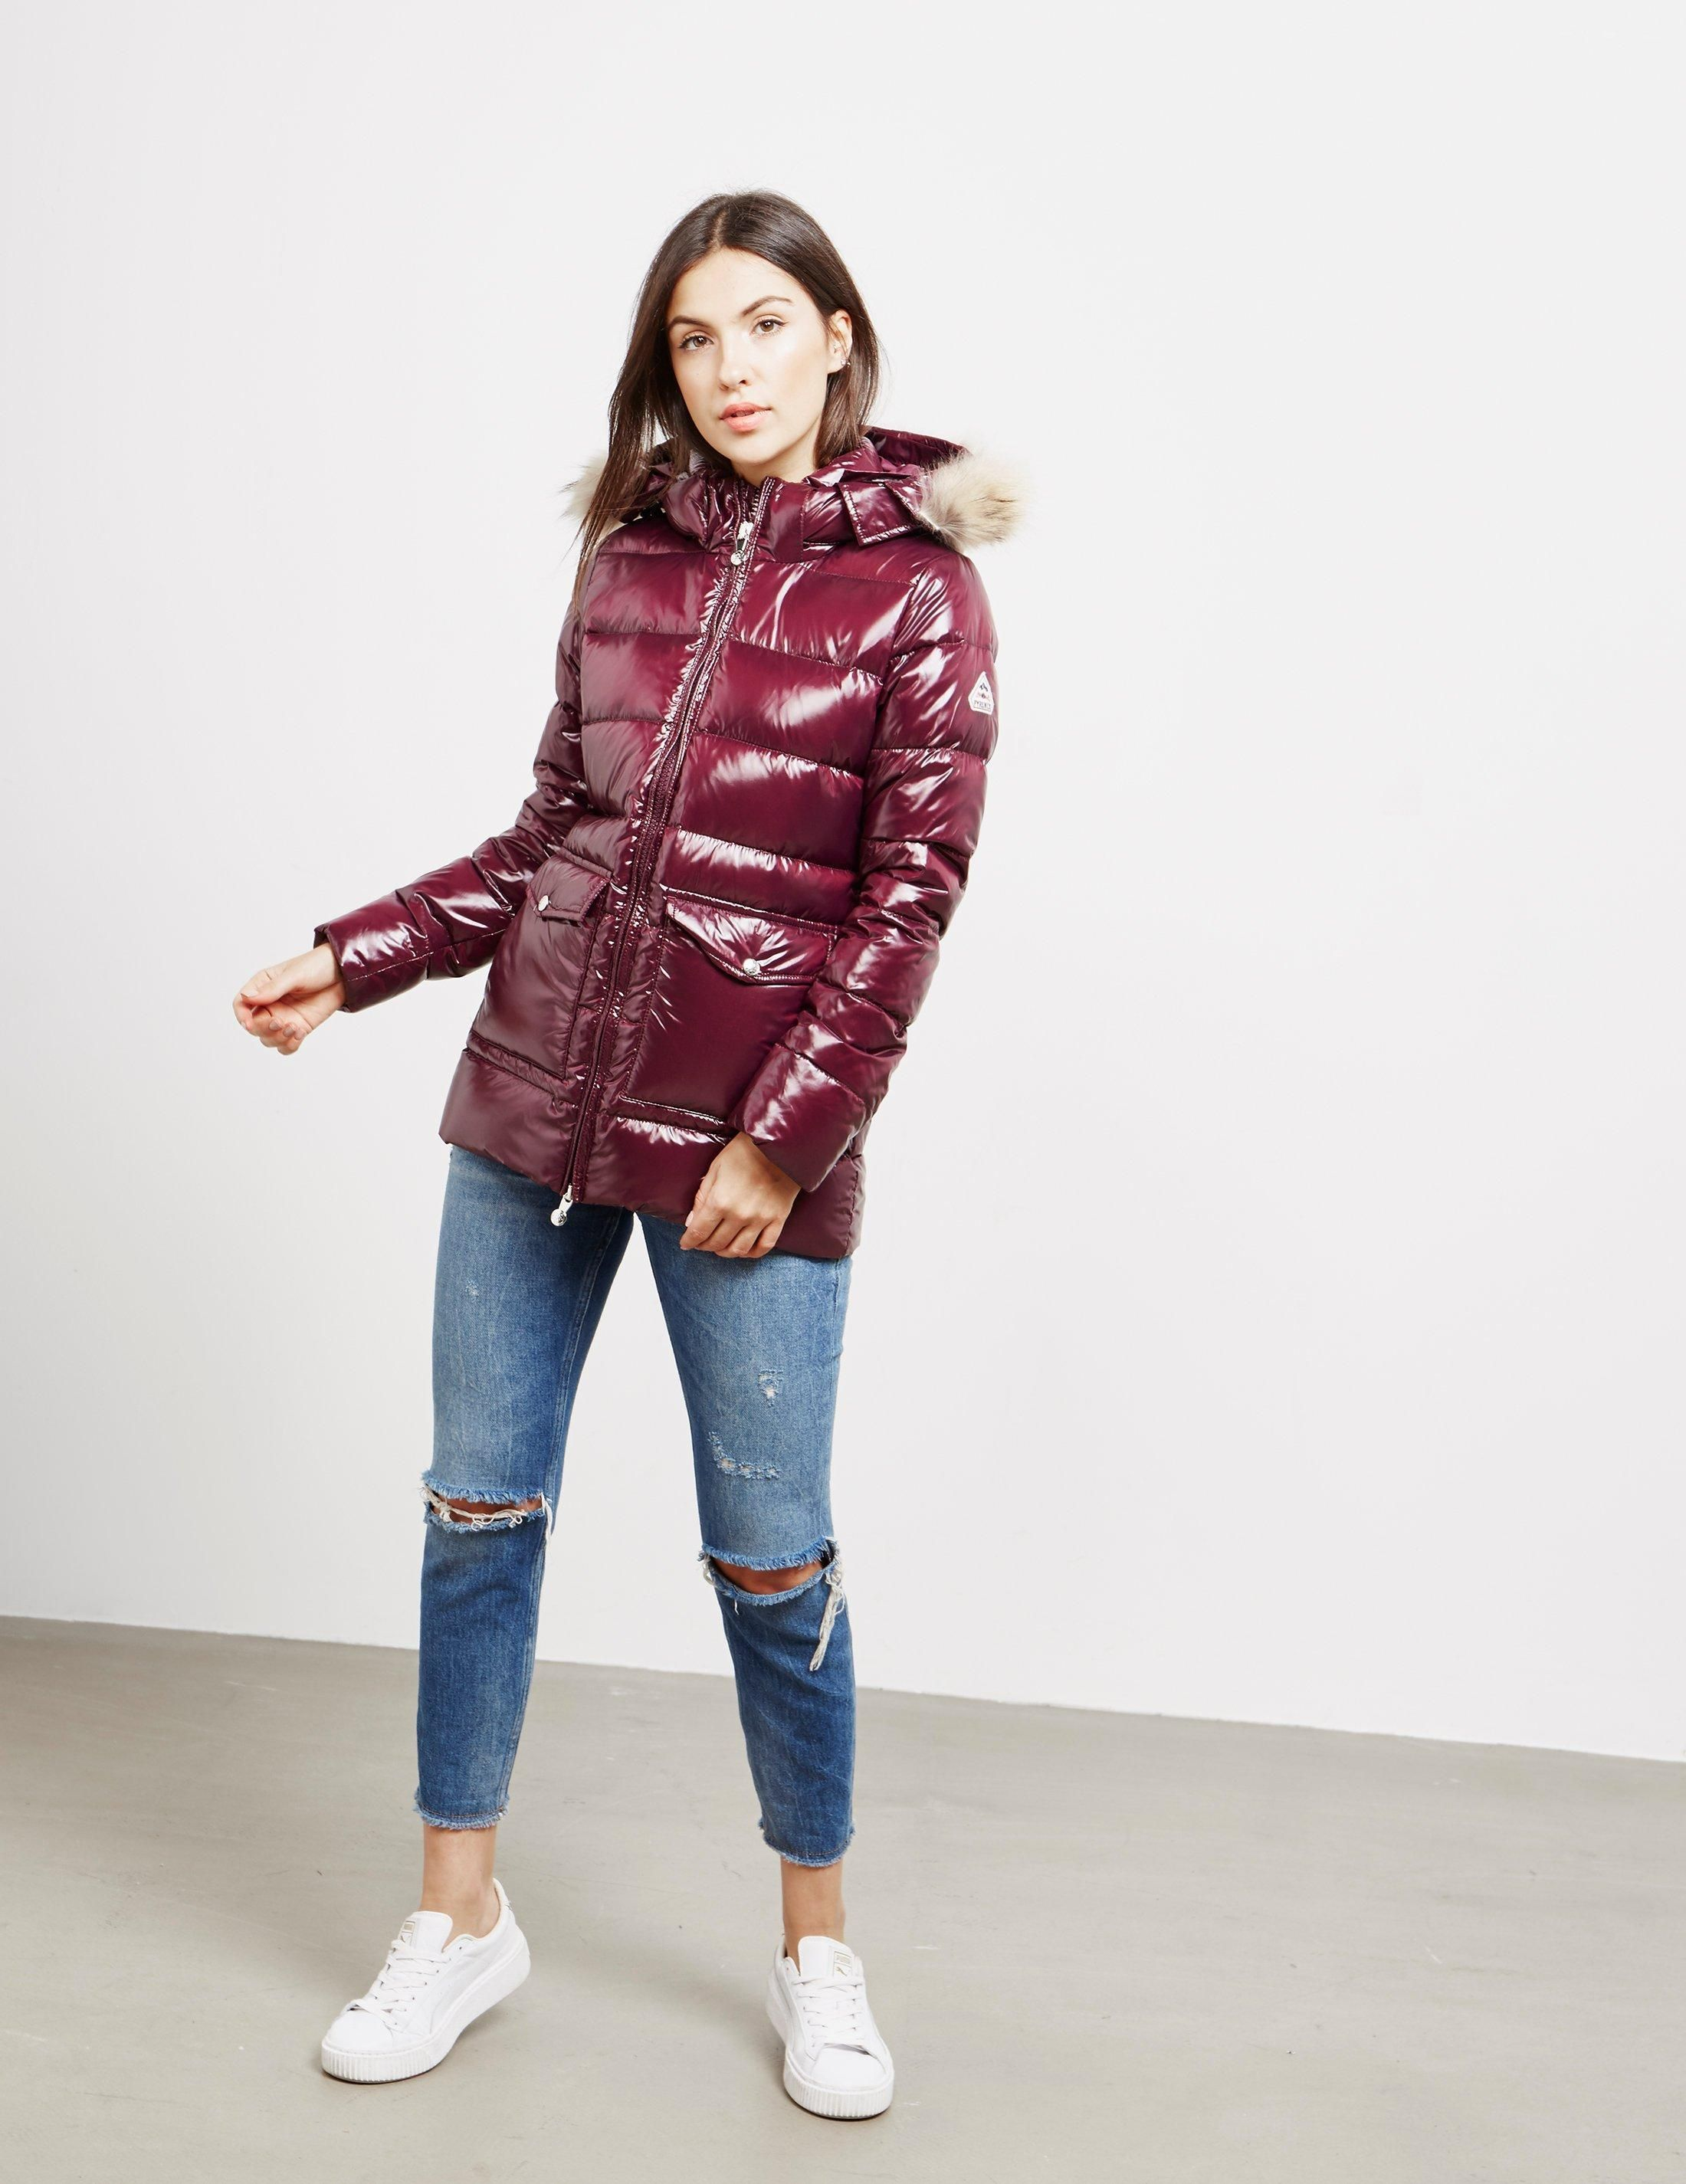 faf62eb795b07 Lyst - Pyrenex Authentic Shiny Jacket Red in Red